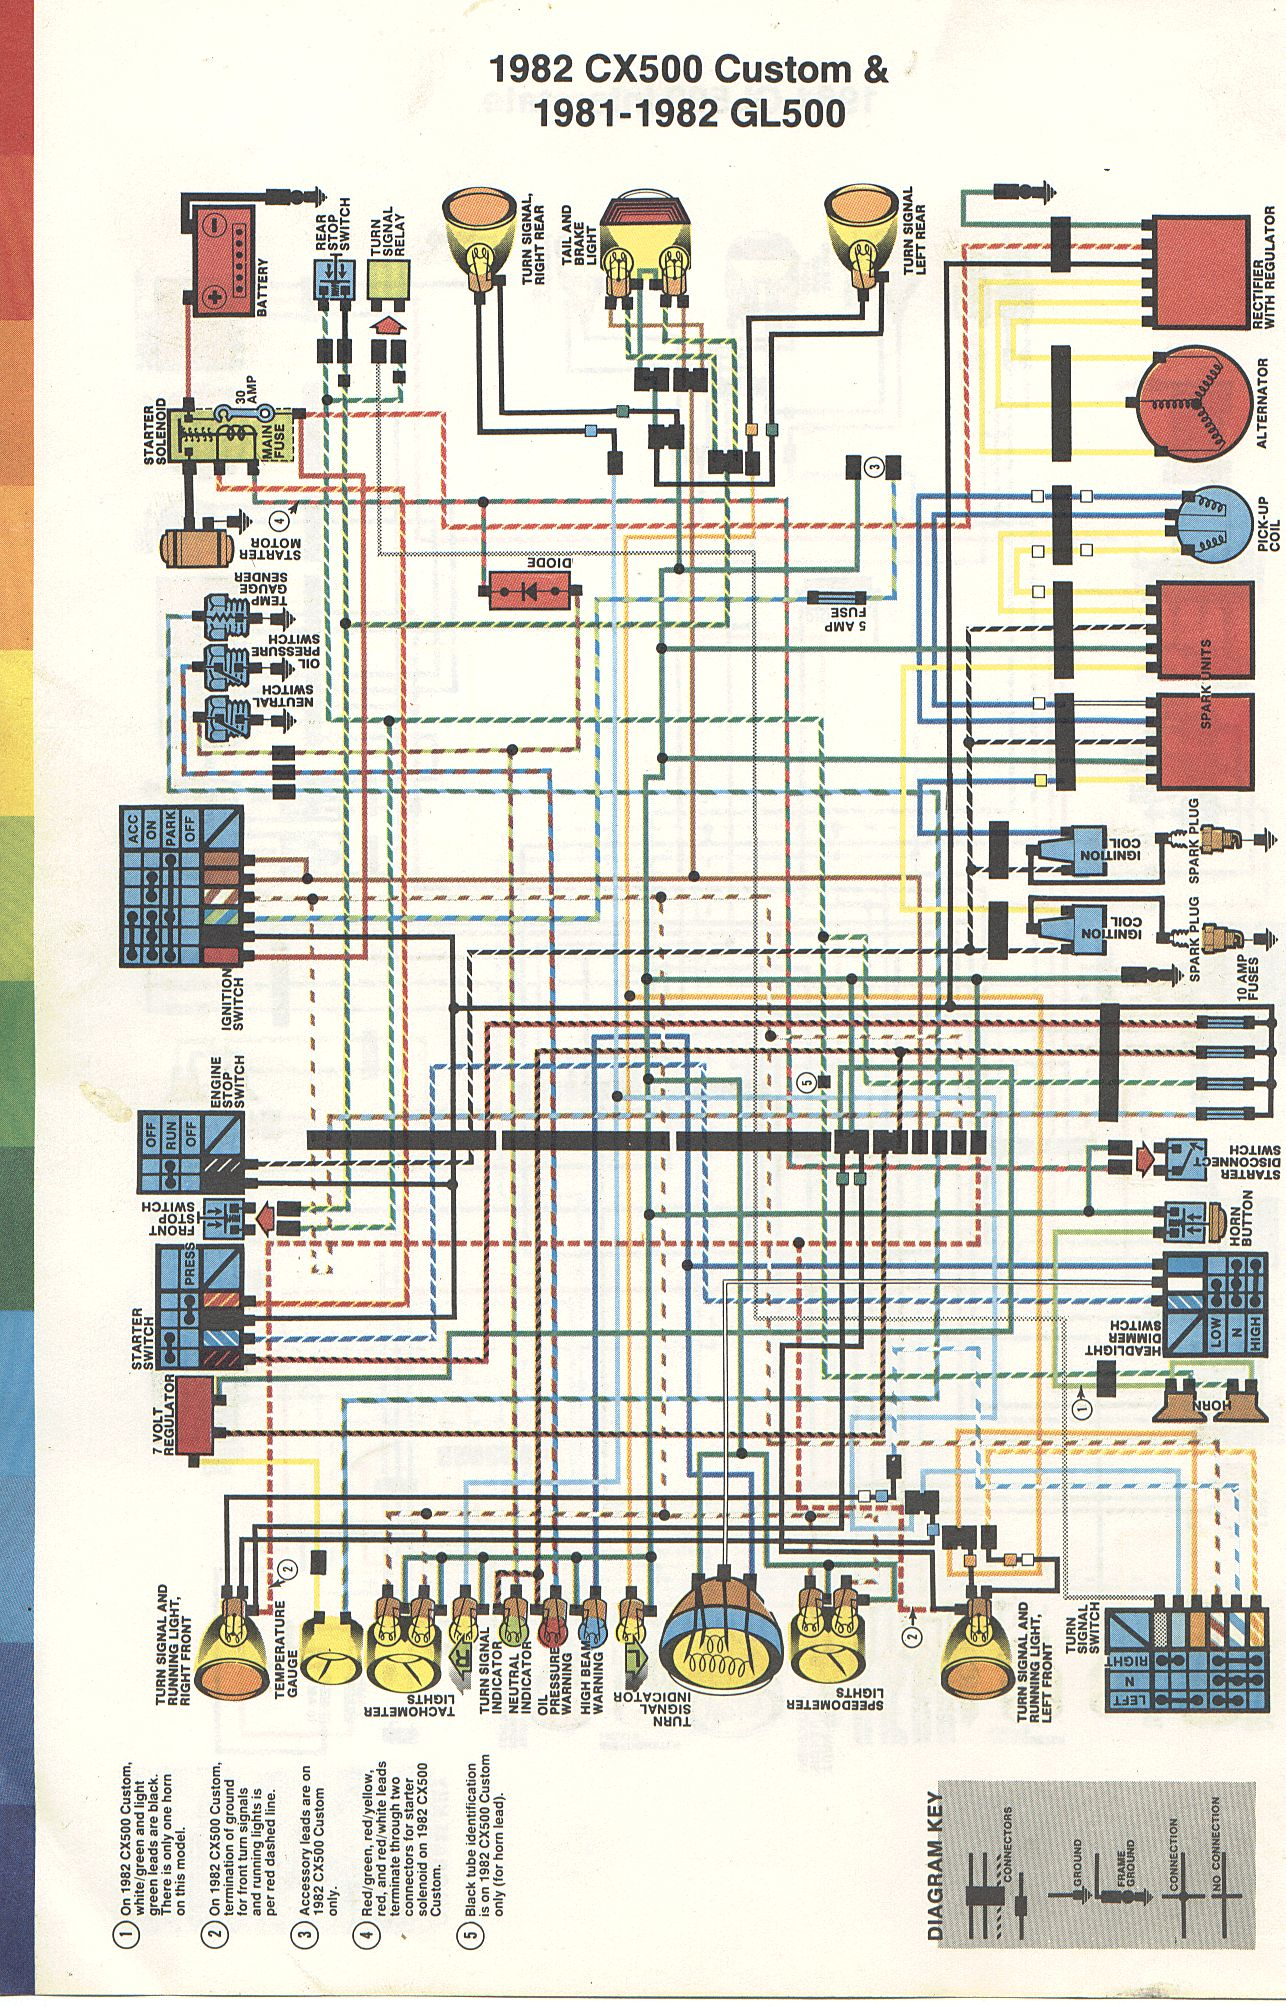 Wiring Diagram 81 Honda Cx500 Simple Shematics Cbr1000rr Order Of The Knight Other Stuff Page Gl500 Interstate